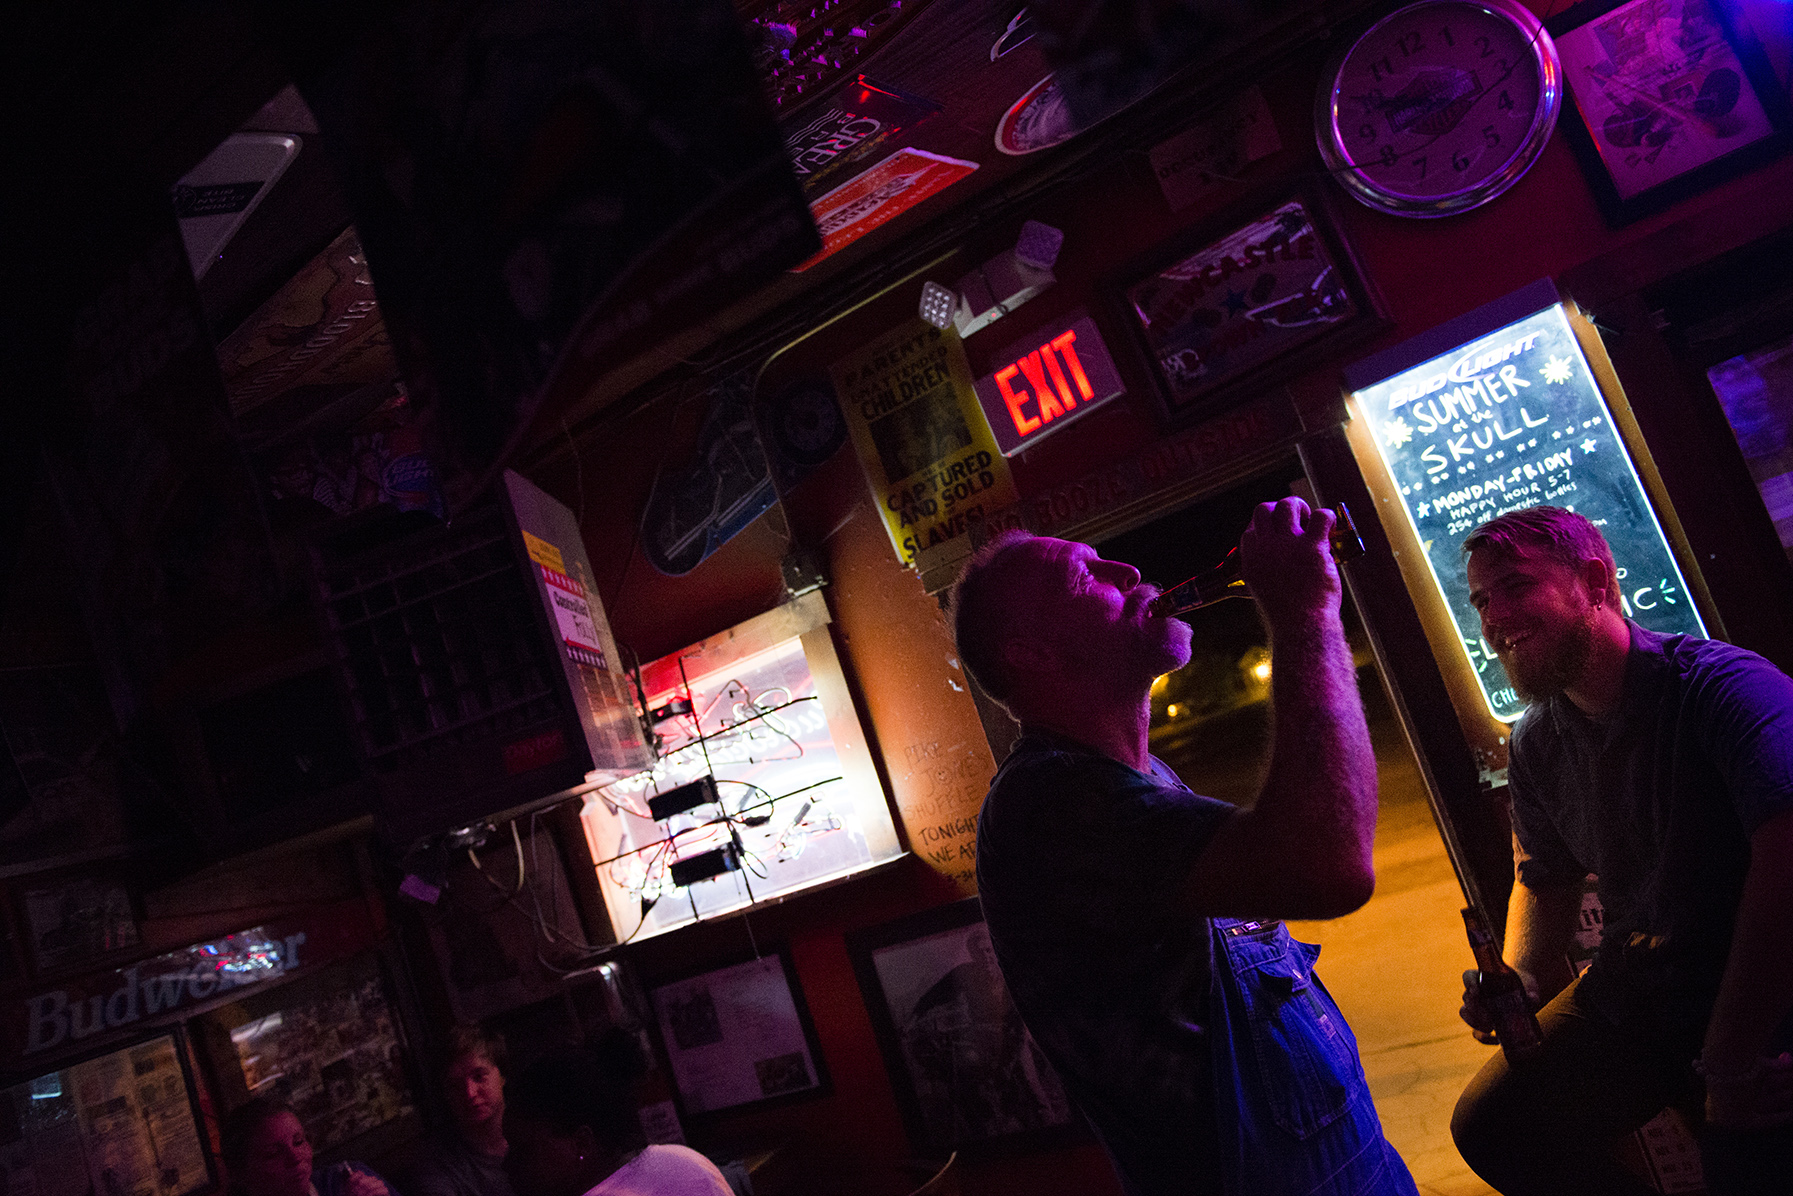 Earl Clark, a regular at The Skull, gulps down a beer on Friday, August 29, 2014 in Athens, Ohio.